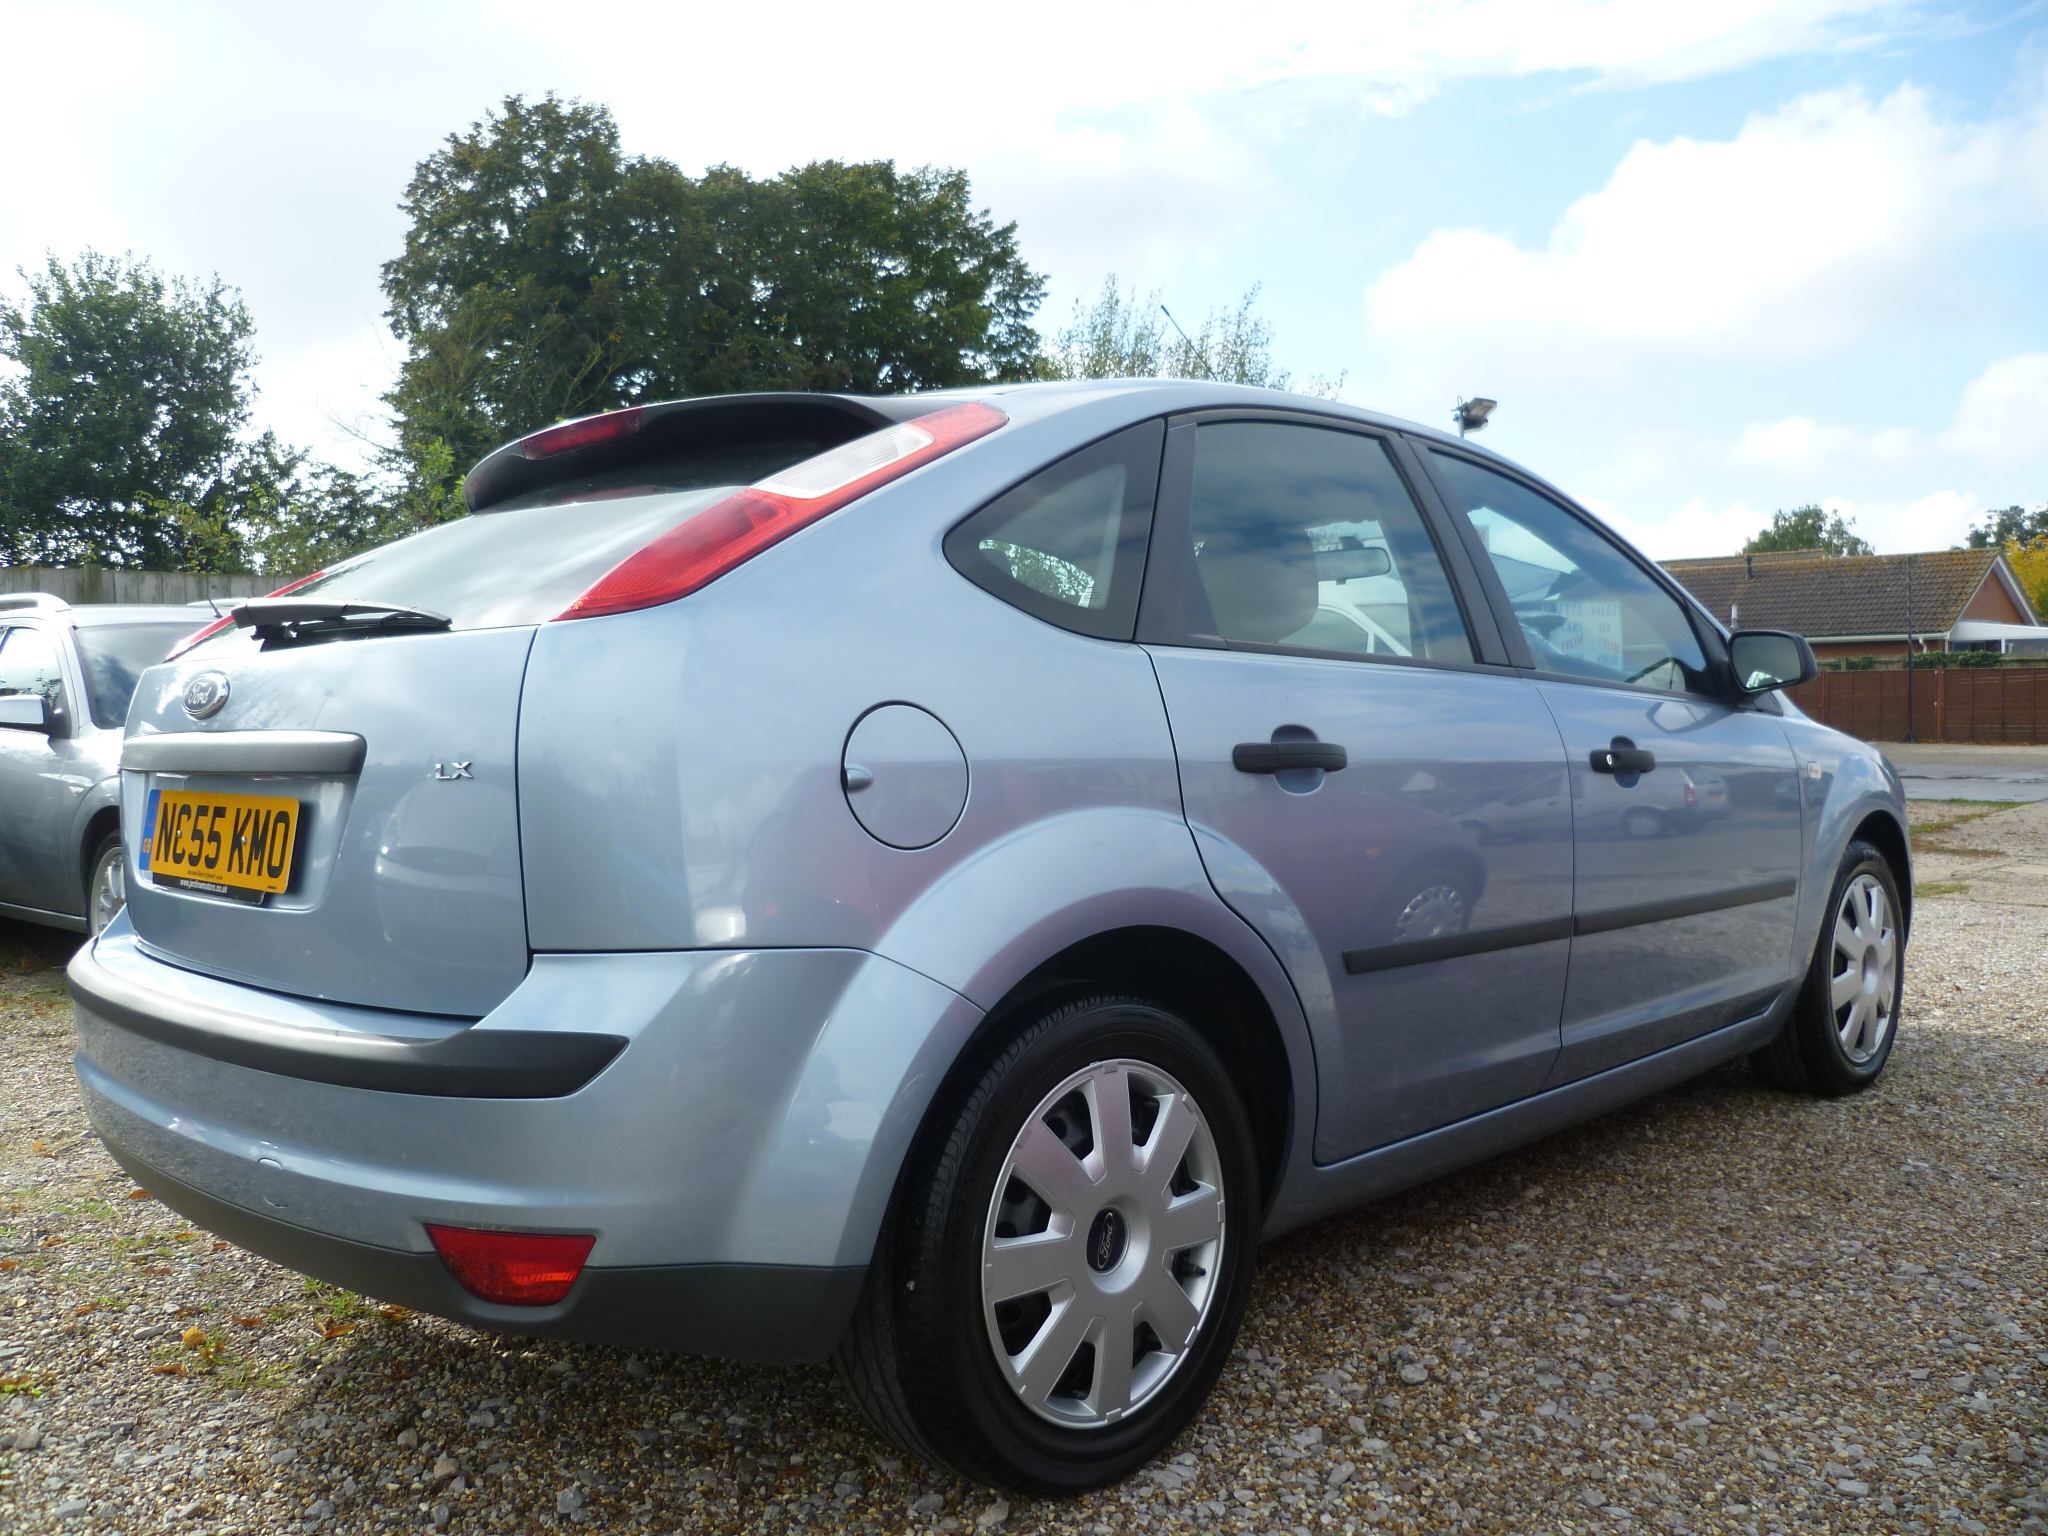 Ford Focus 1.6 LX Automatic 007